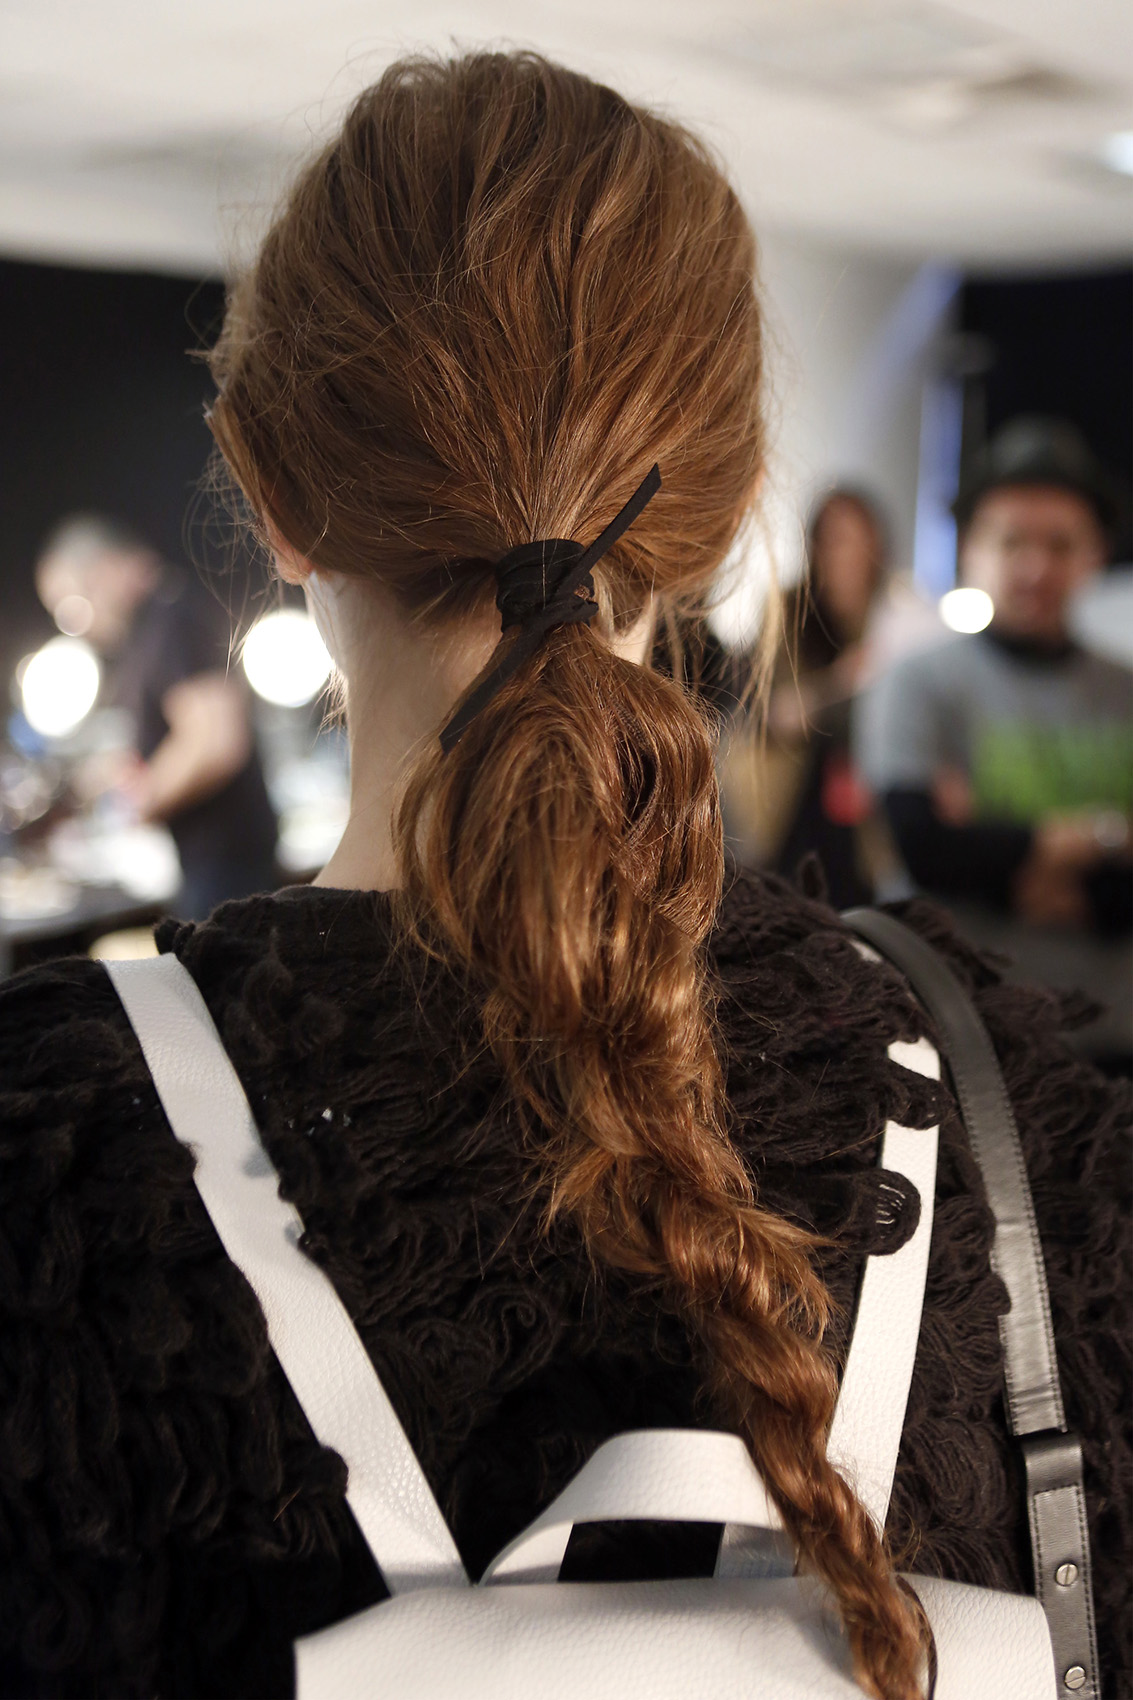 Braid from Rebecca Minkoff Fashion Week 2016